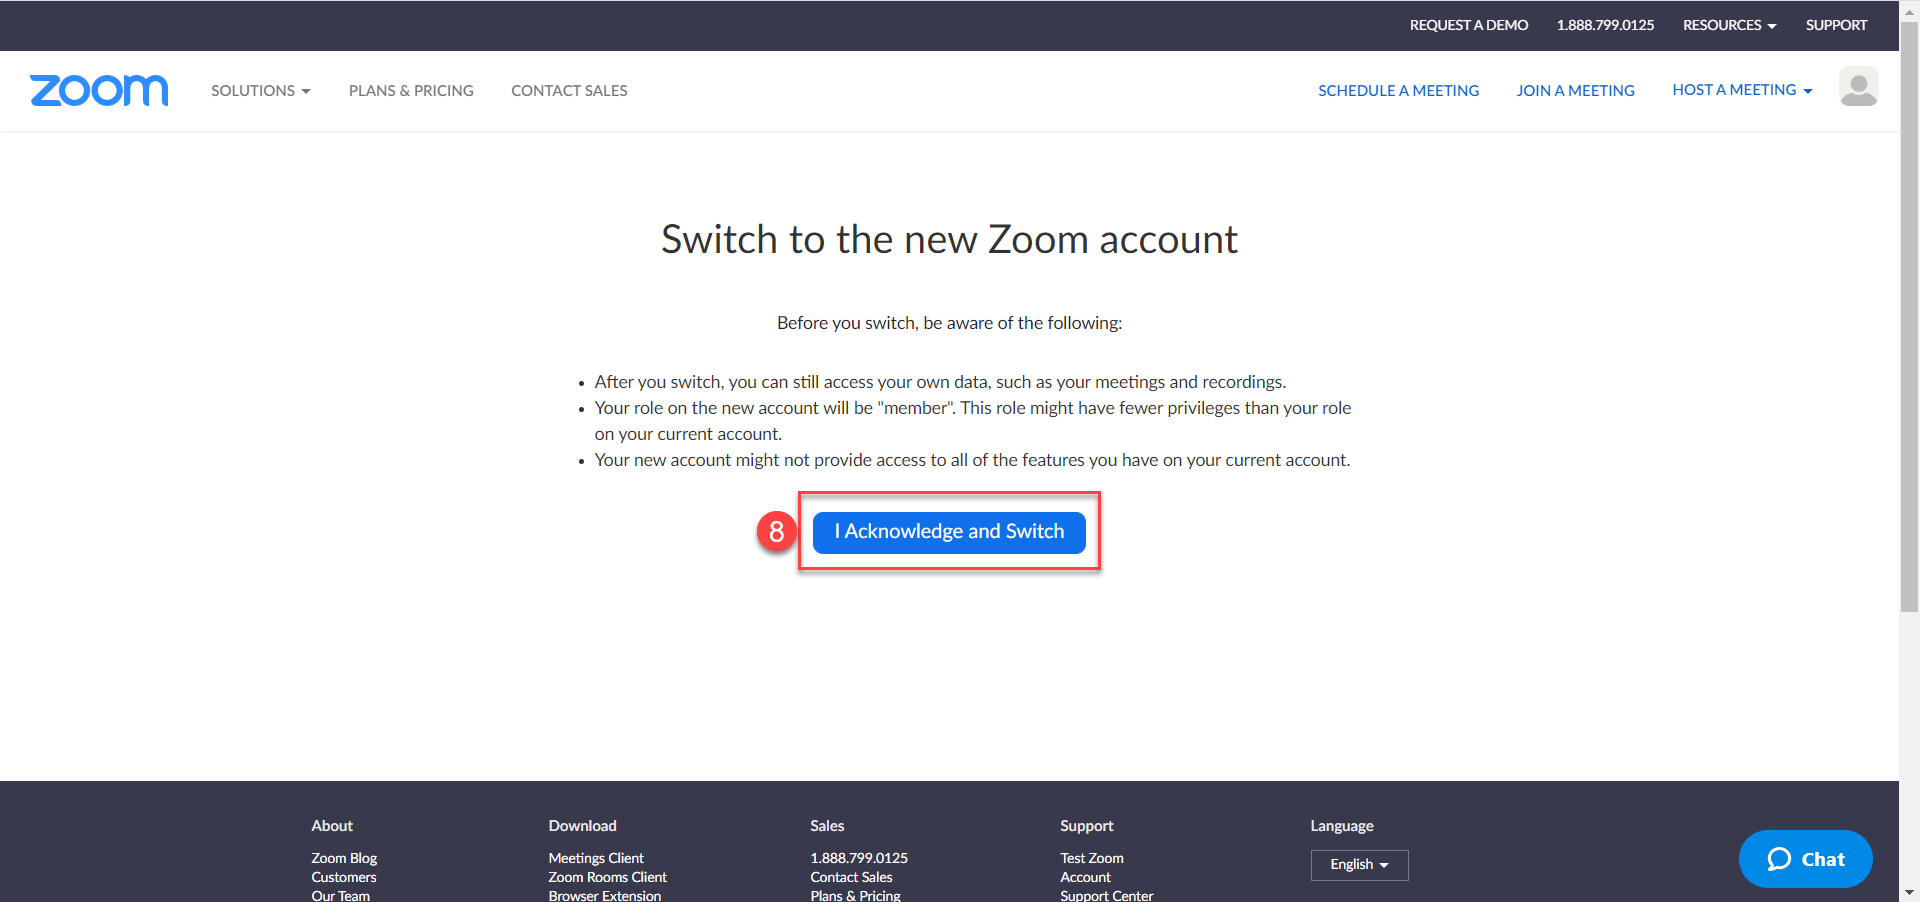 Acknowledgement screen when switching to the new Zoom account.